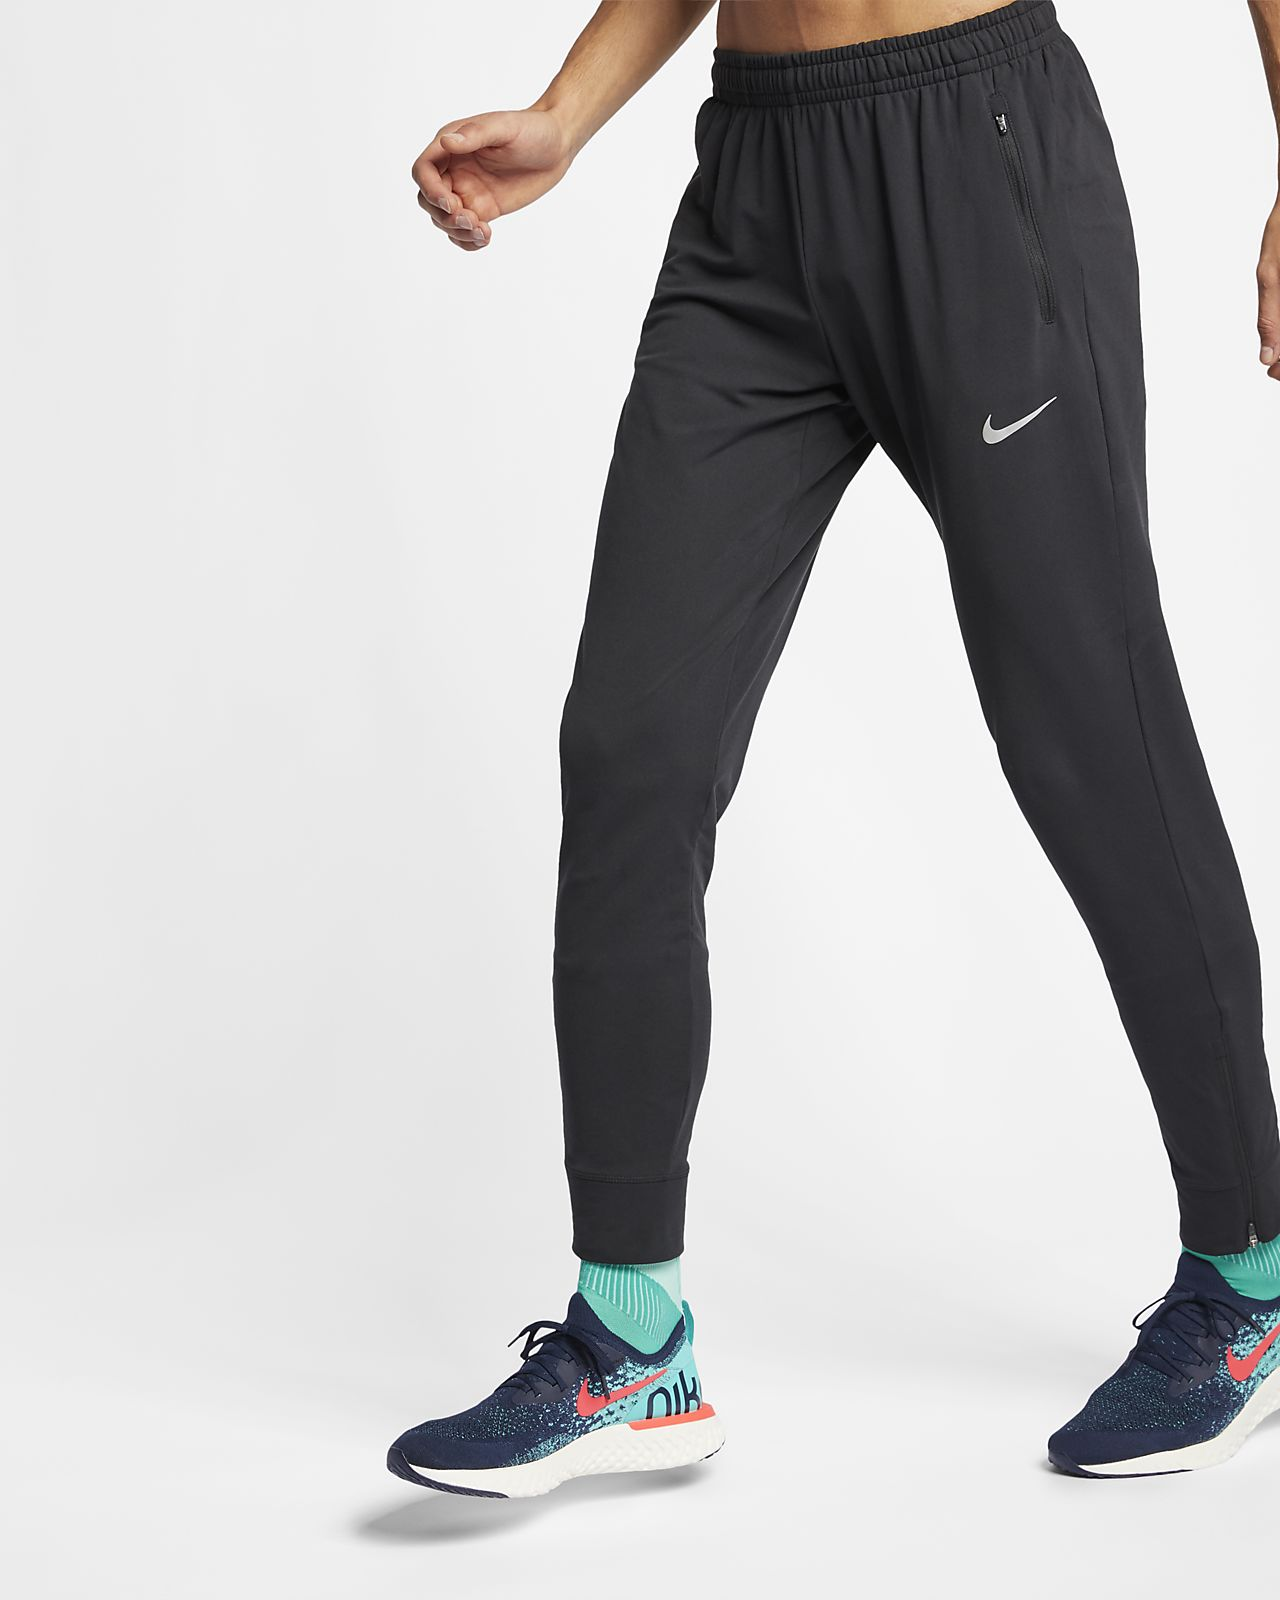 78072e661ea Nike Dri-FIT Men s Running Pants. Nike.com